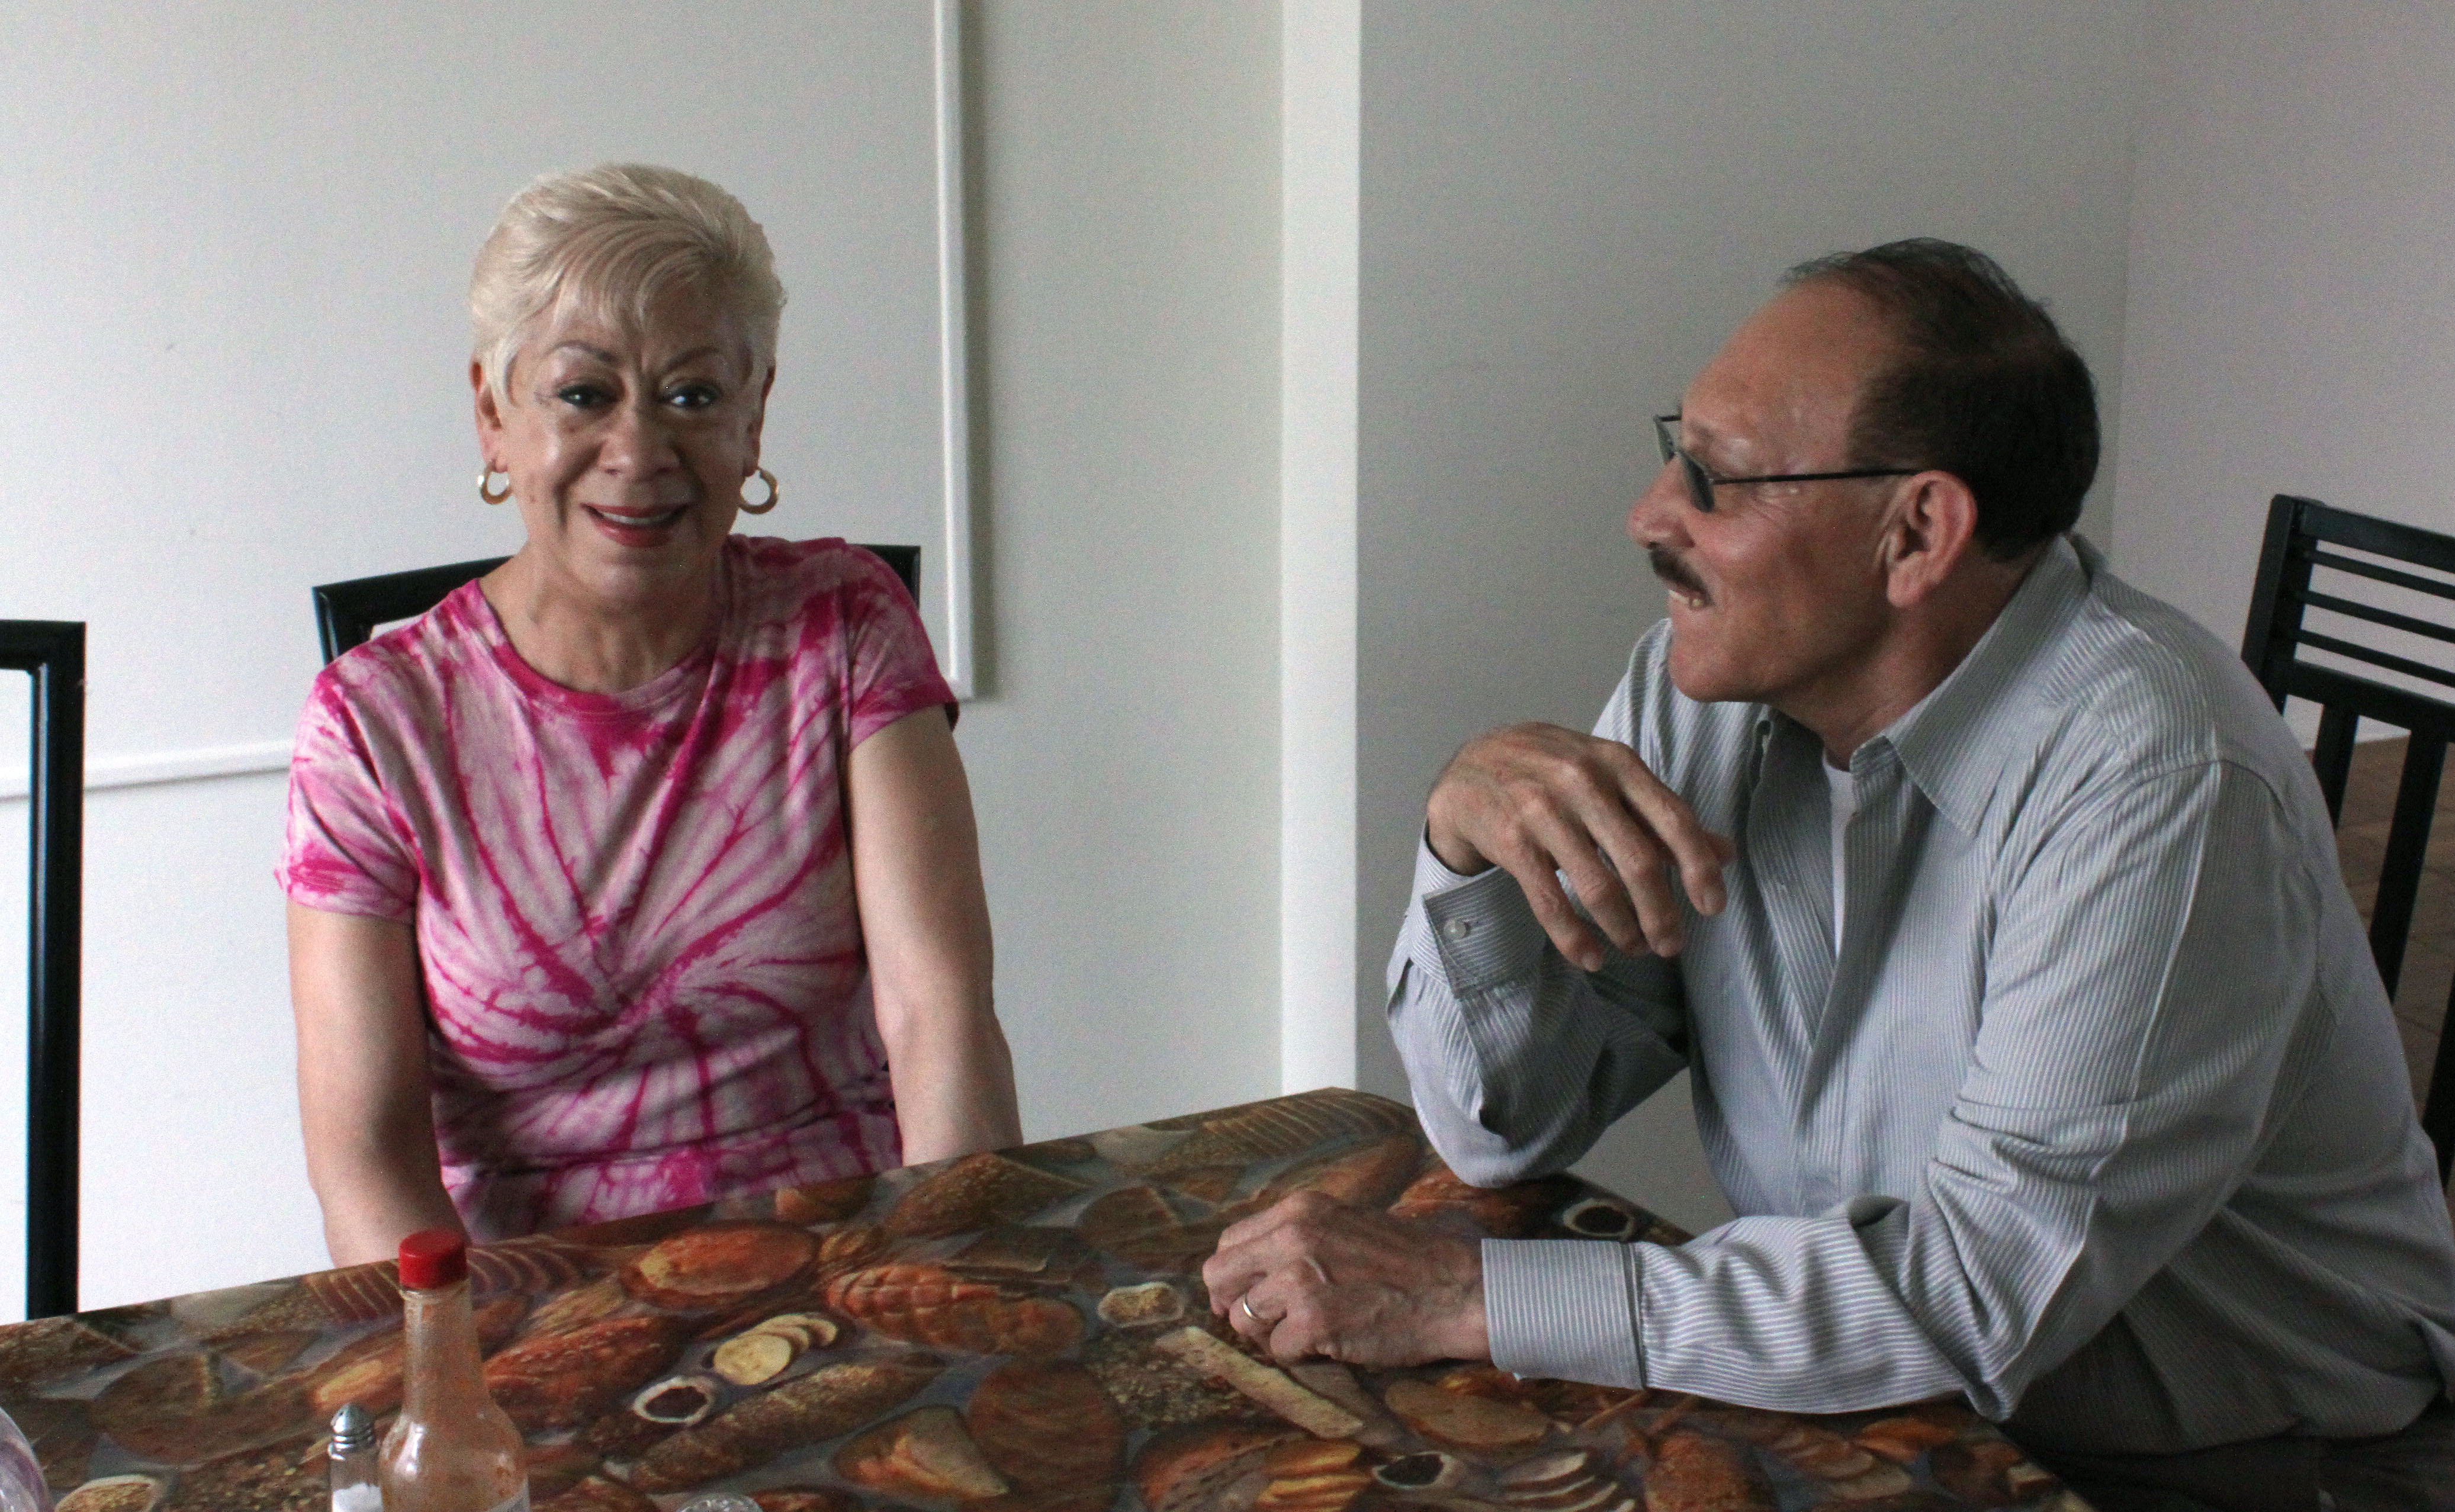 Eugenia Aldama and Humberto Lopez at the dining table in their temporary home in Parkmerced. Photo by Laura Wenus